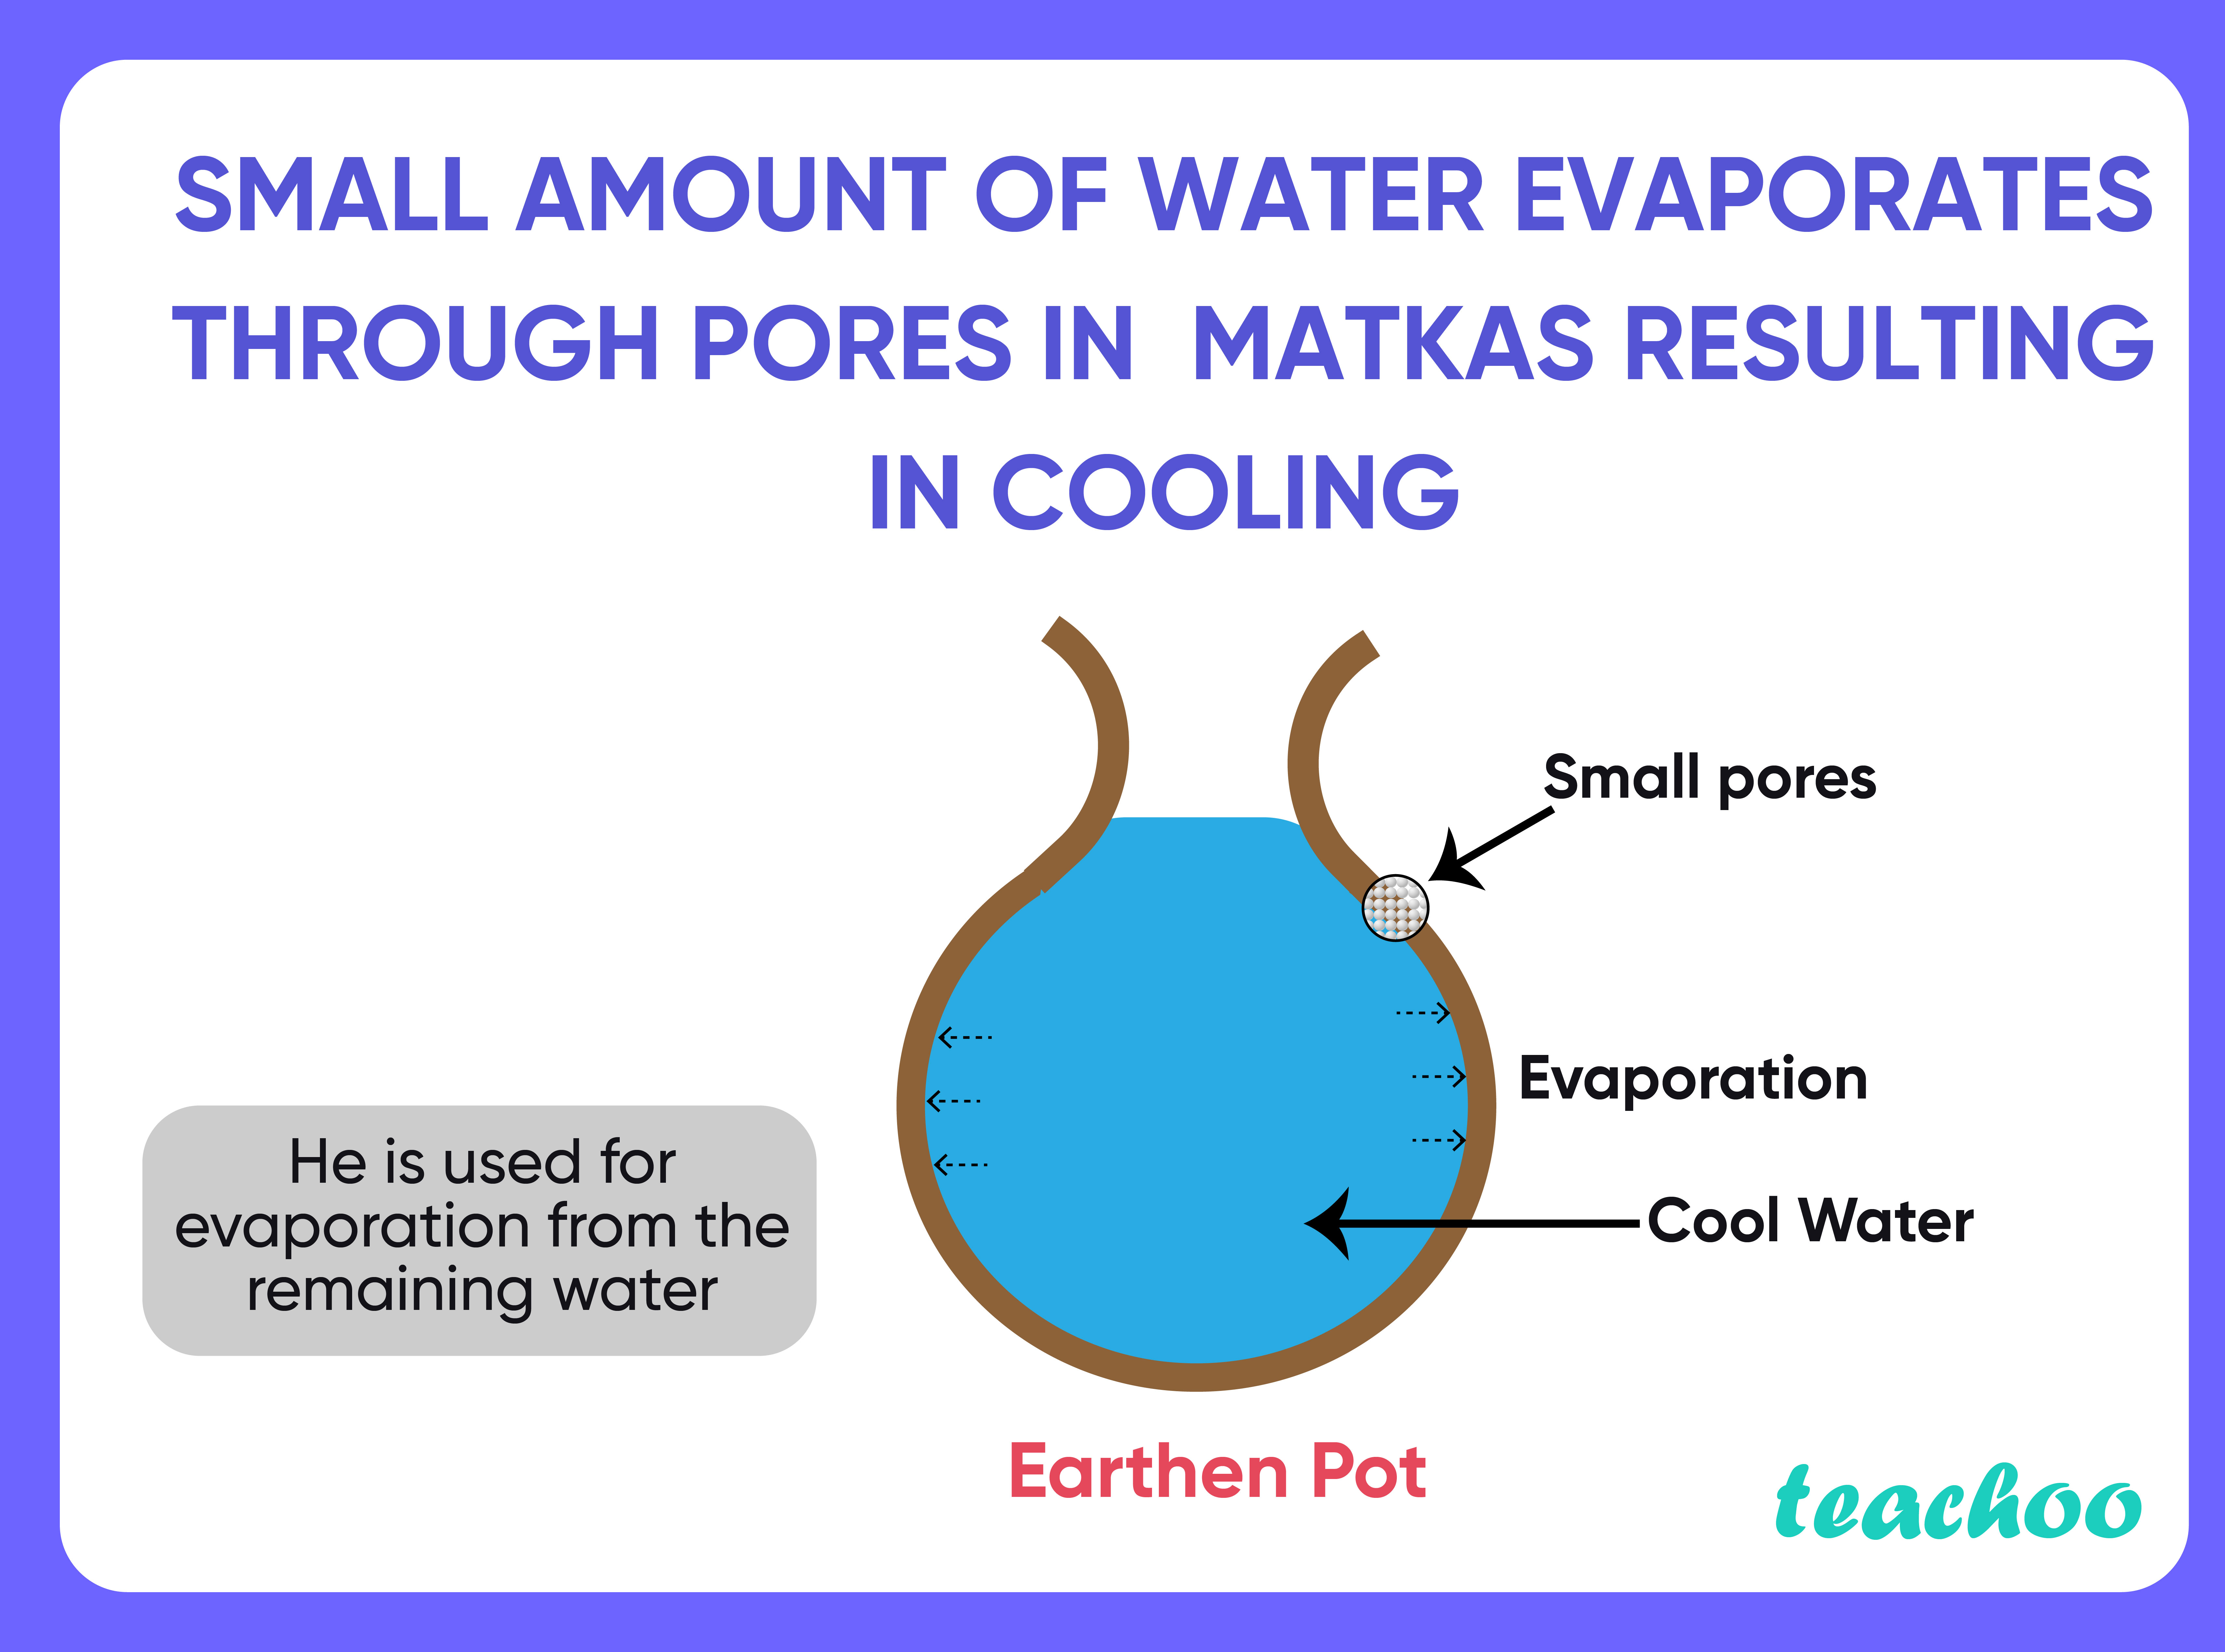 mall amount of water evaporates through pores in matkas resulting in cooling-Teachoo-01.jpg